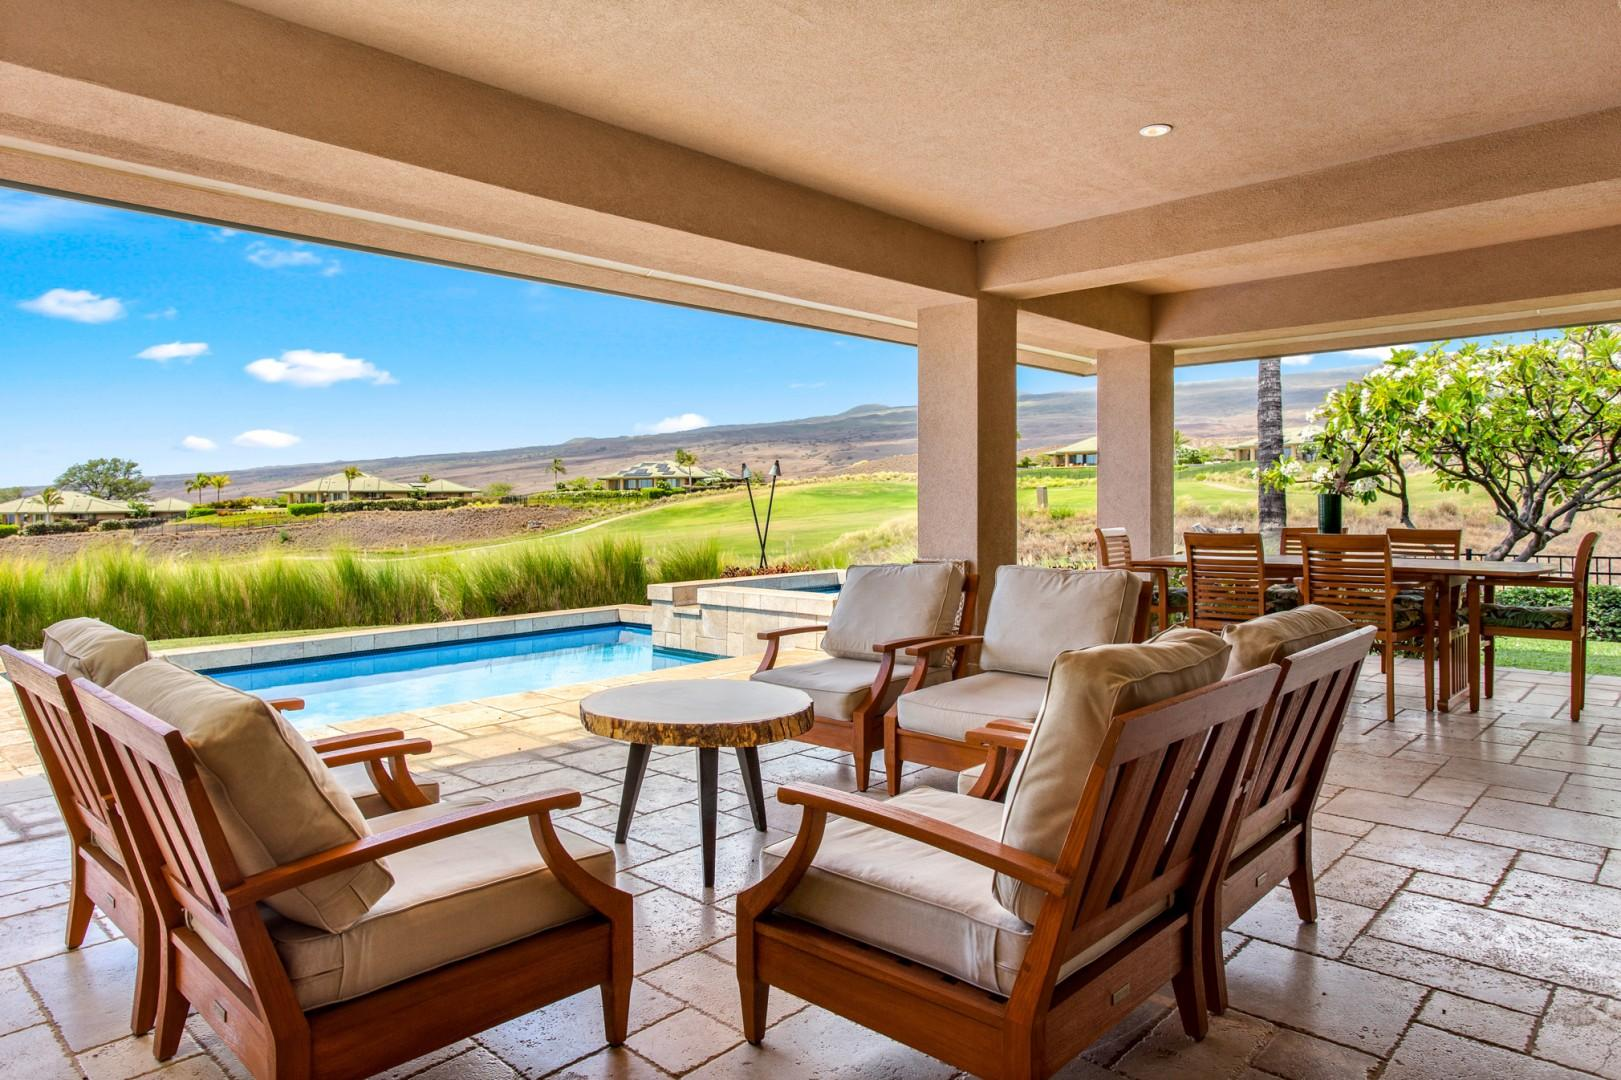 Closer view of lounge seating on the covered lanai with views of Mauna Kea, the regal mountain after which the resort is named.